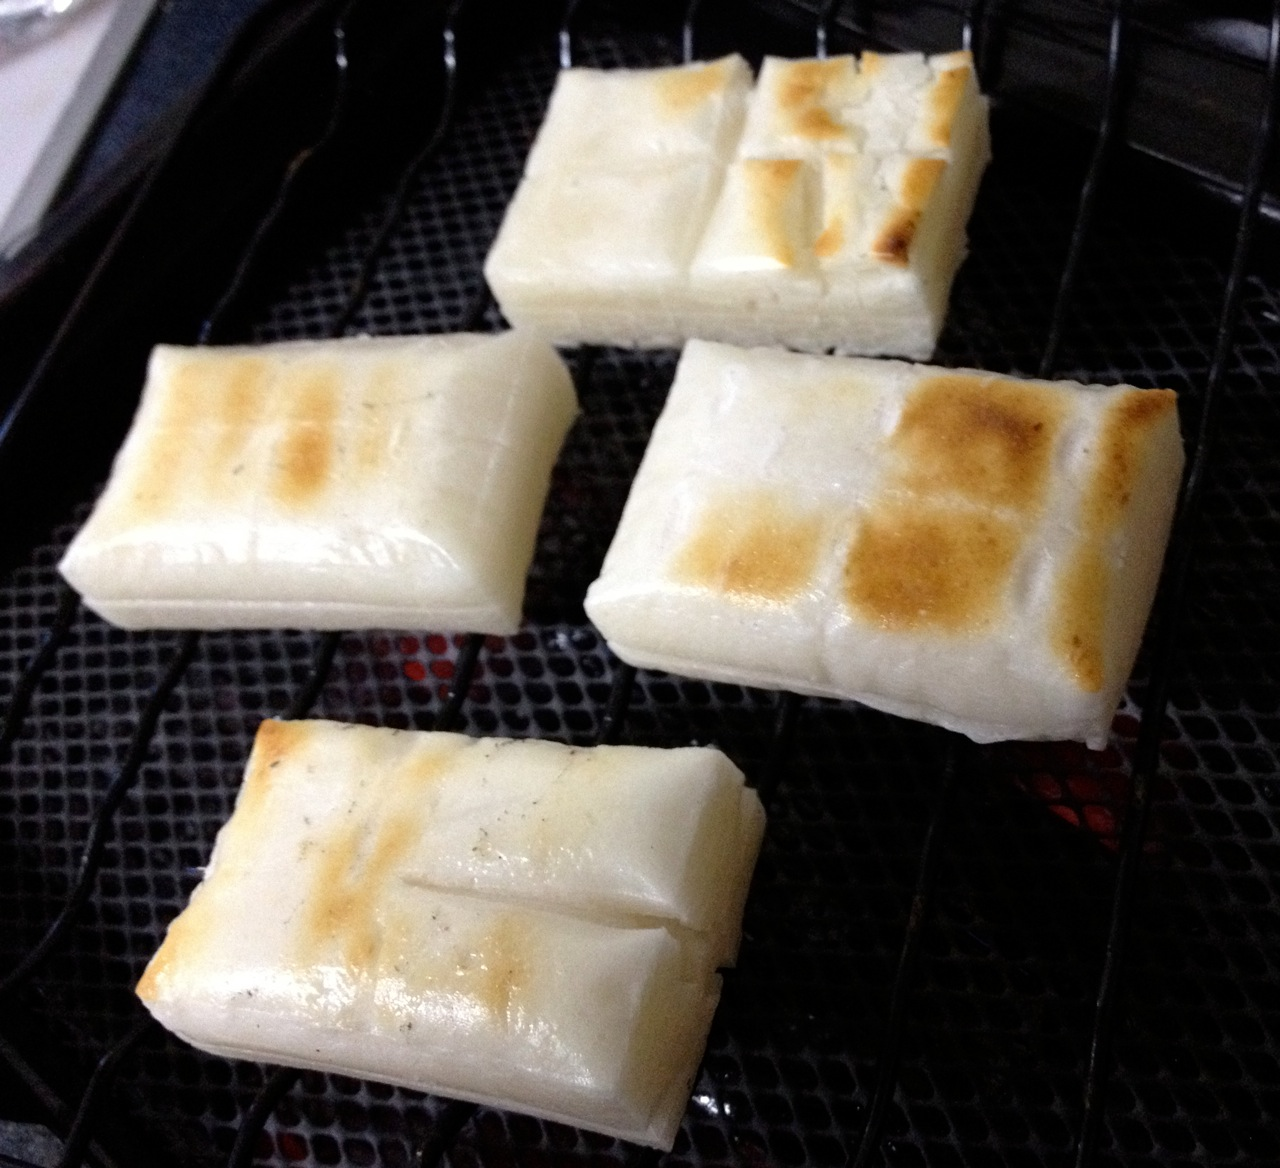 Maple Kinako on Grilled Mochi (Japanese Rice Cakes with Maple Soybean Syrup)